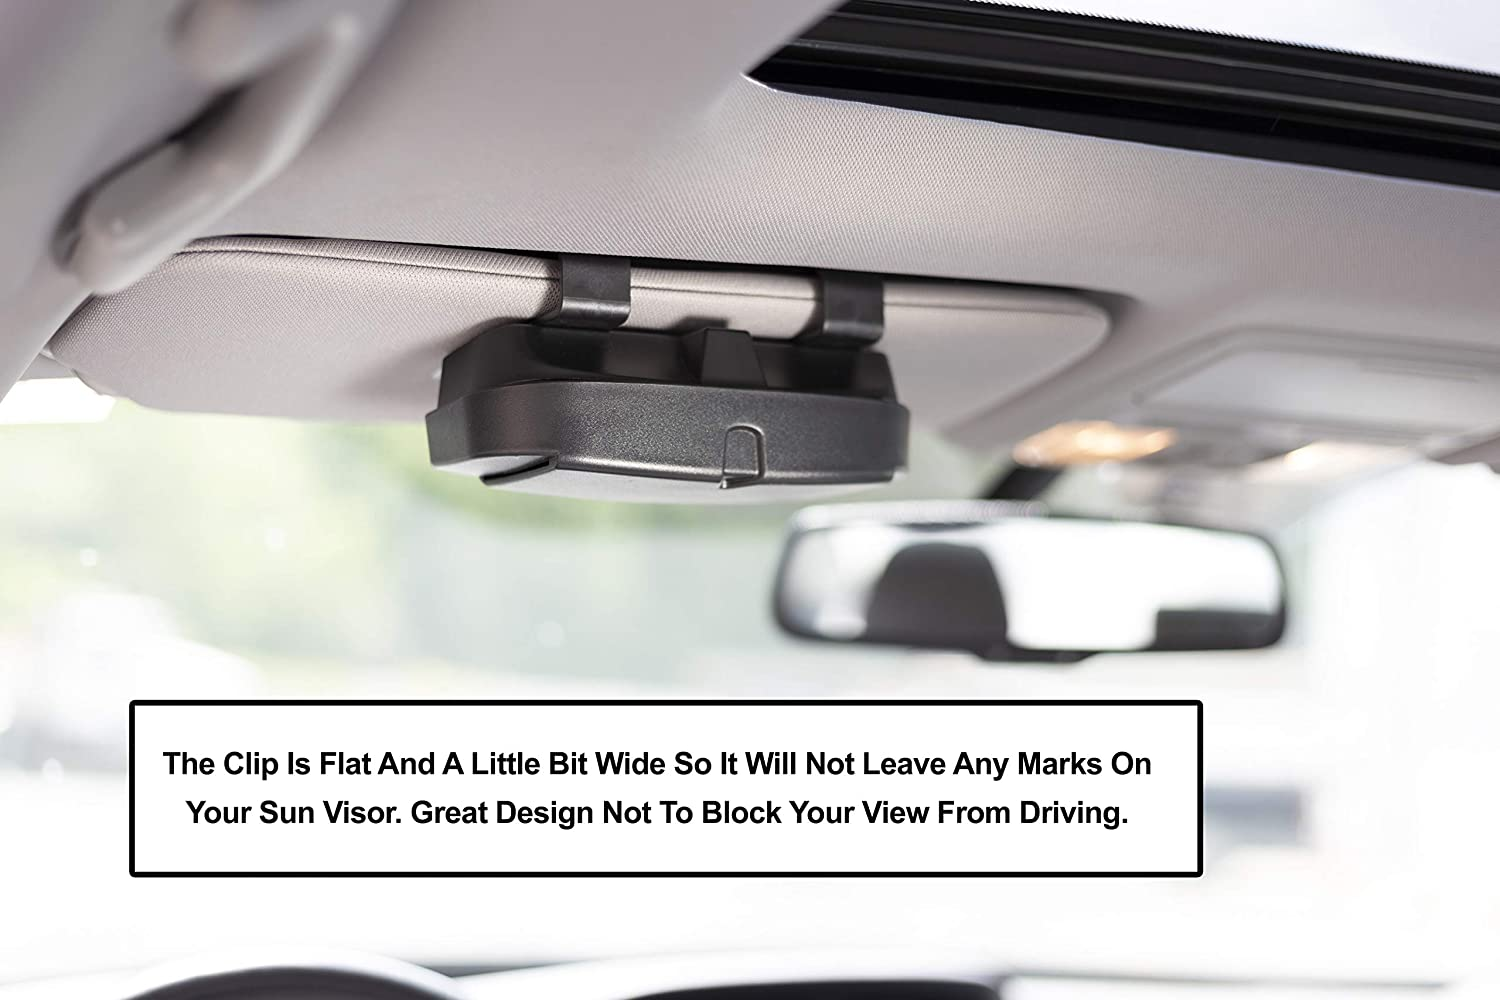 Includes 2 Gas or Credit Card Slots On The Outside lebogner Car Sun Visor Sunglasses Case Holder Fits All Vehicle Models Easy Installation Eye Glasses Organizer Box with A Double Snap Clip Design